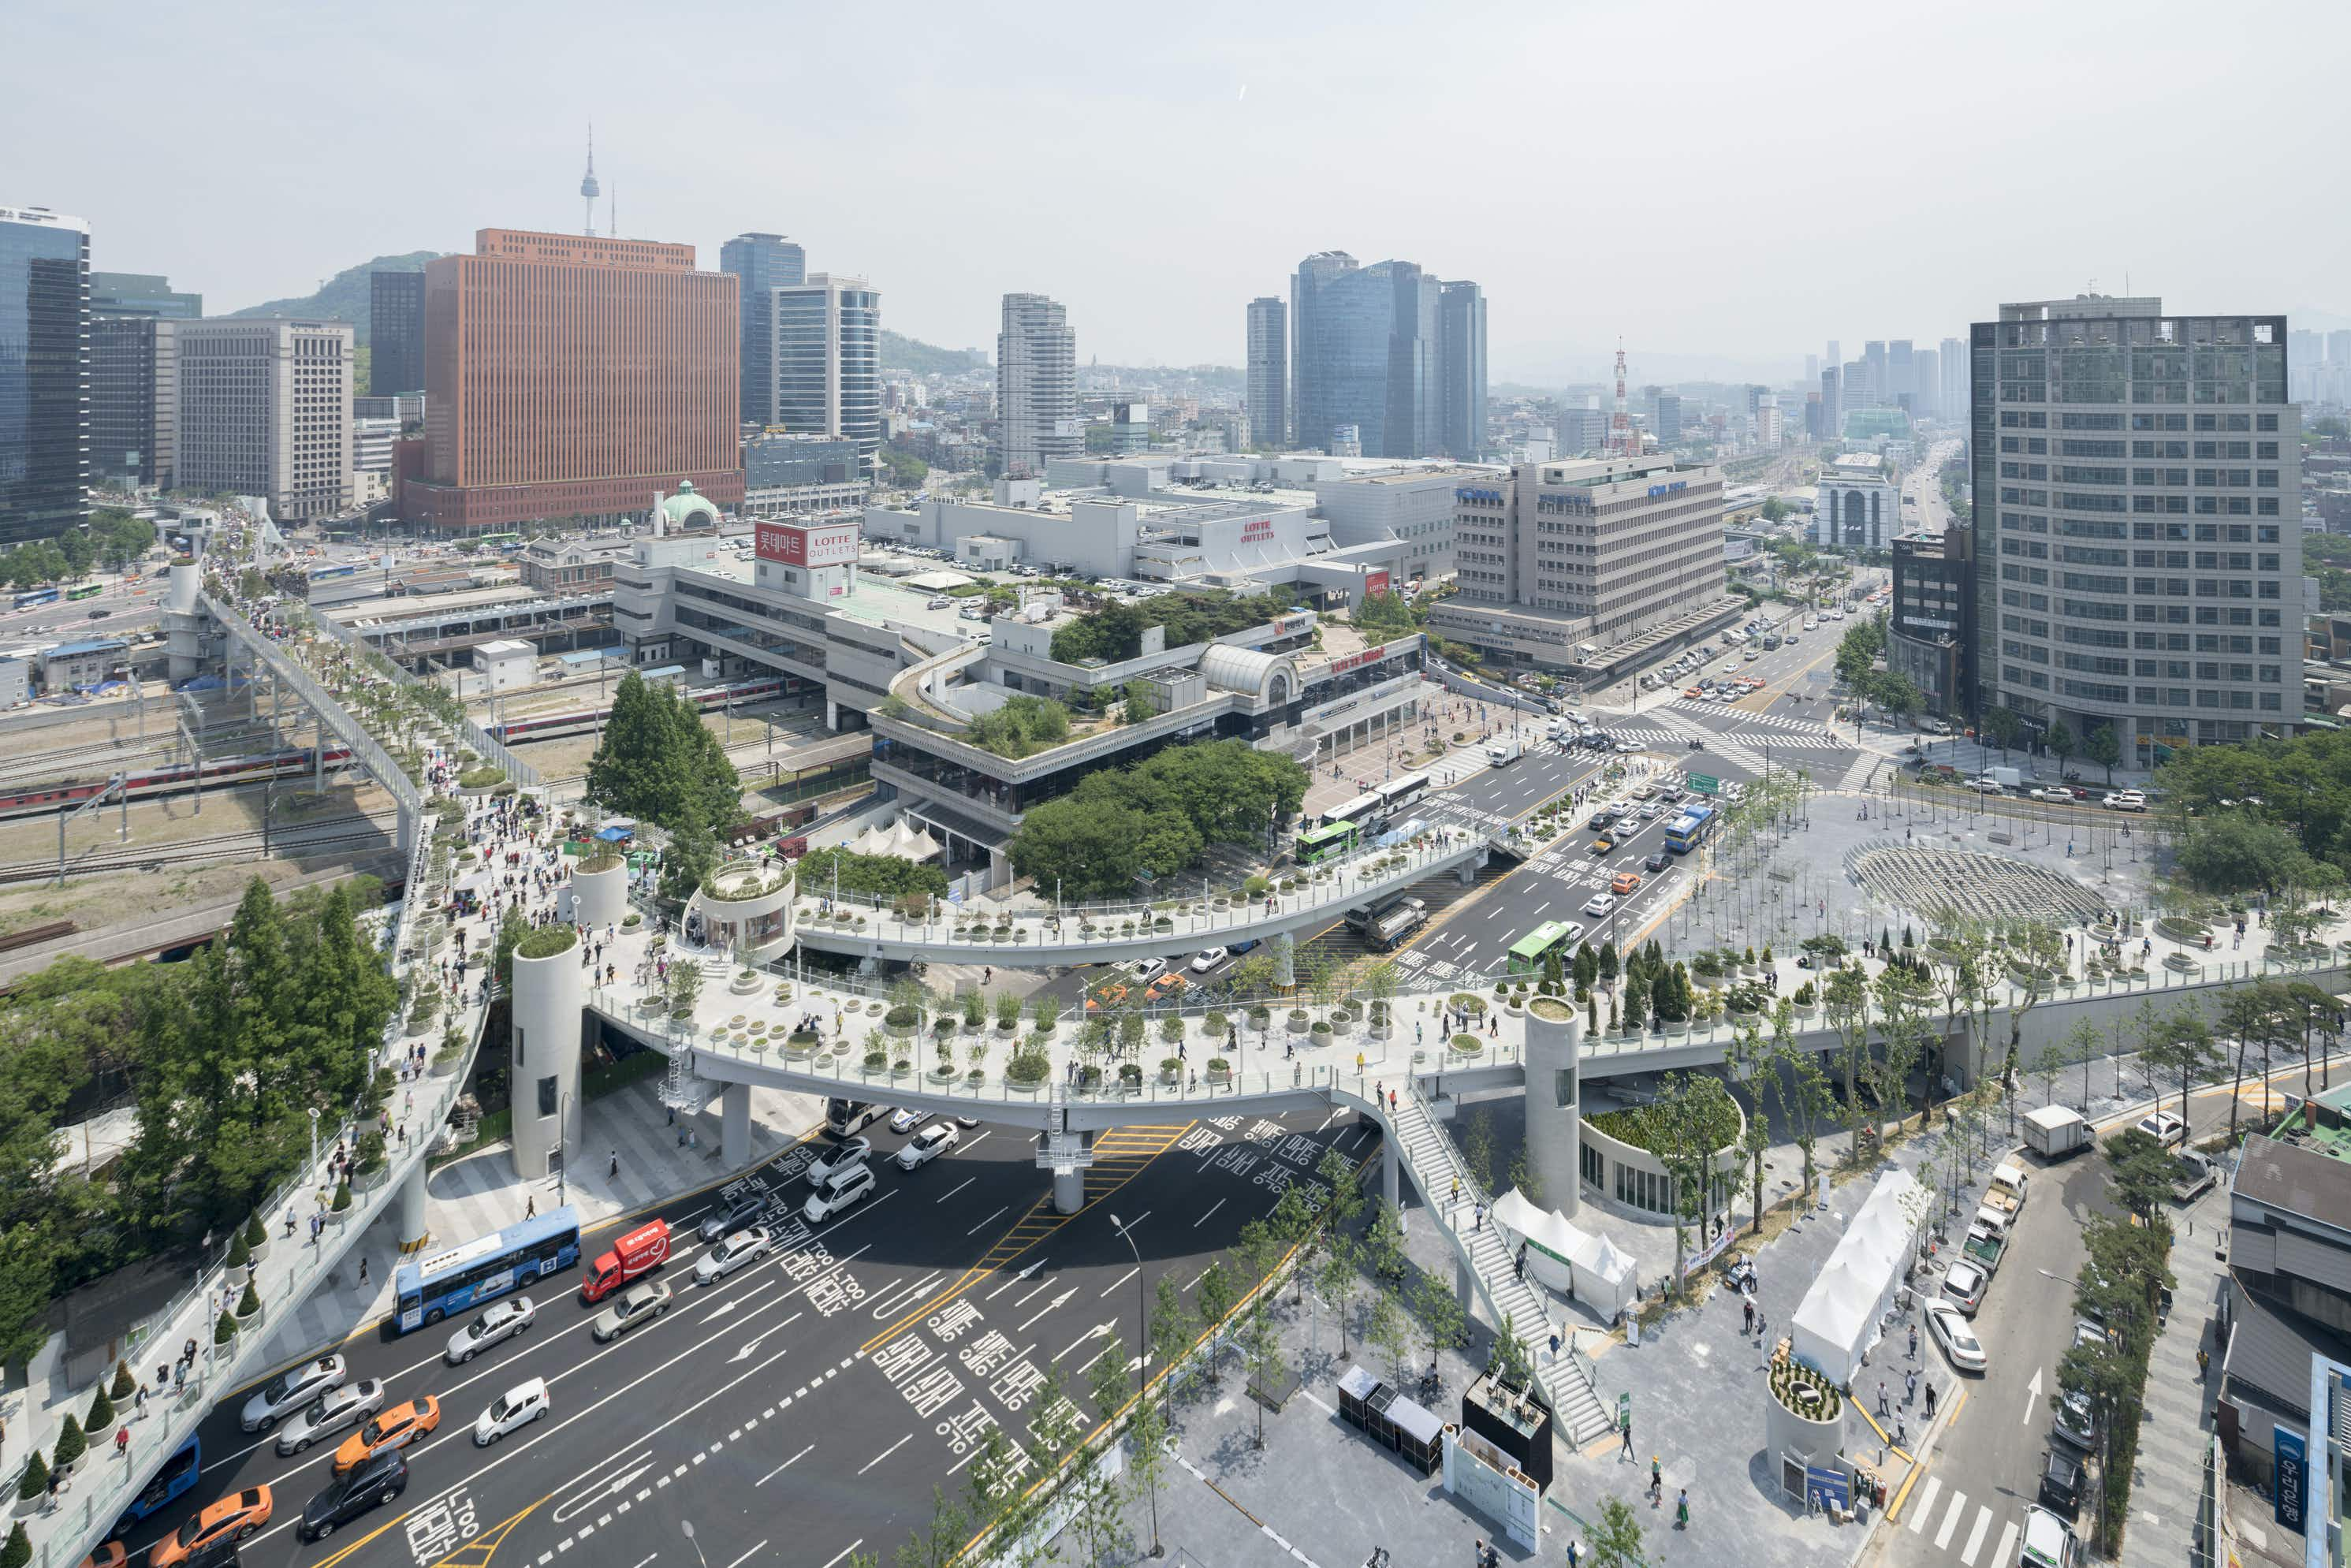 South Korea has transformed a 1970s motorway into Seoul's answer to NYC's High Line